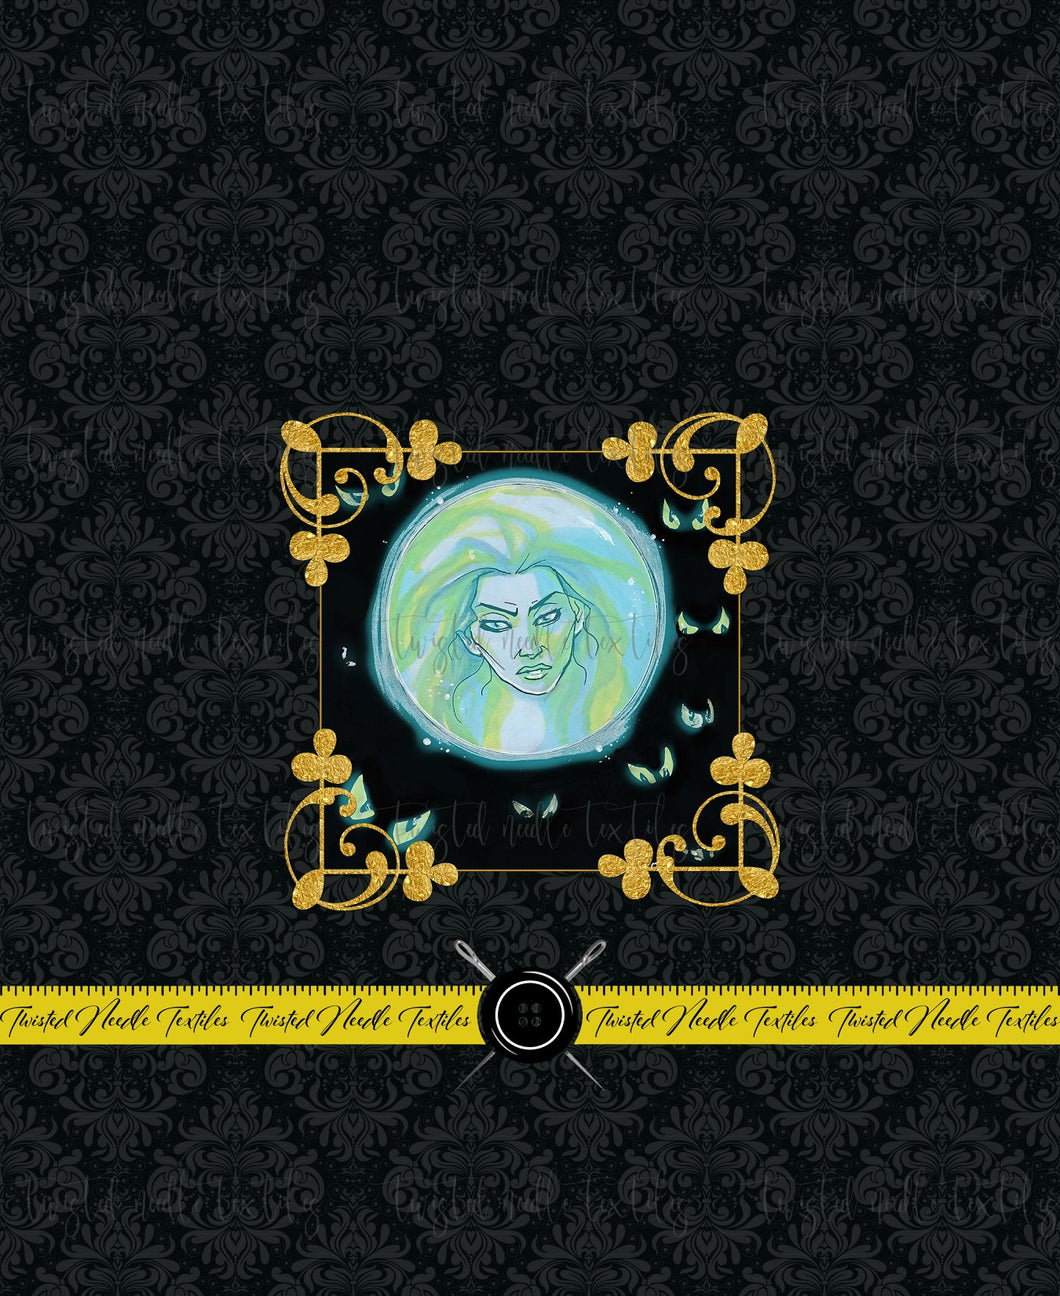 HAUNTED MANSION MADAME LEOTA PANEL - TNT CUSTOM PRINTING PREORDER